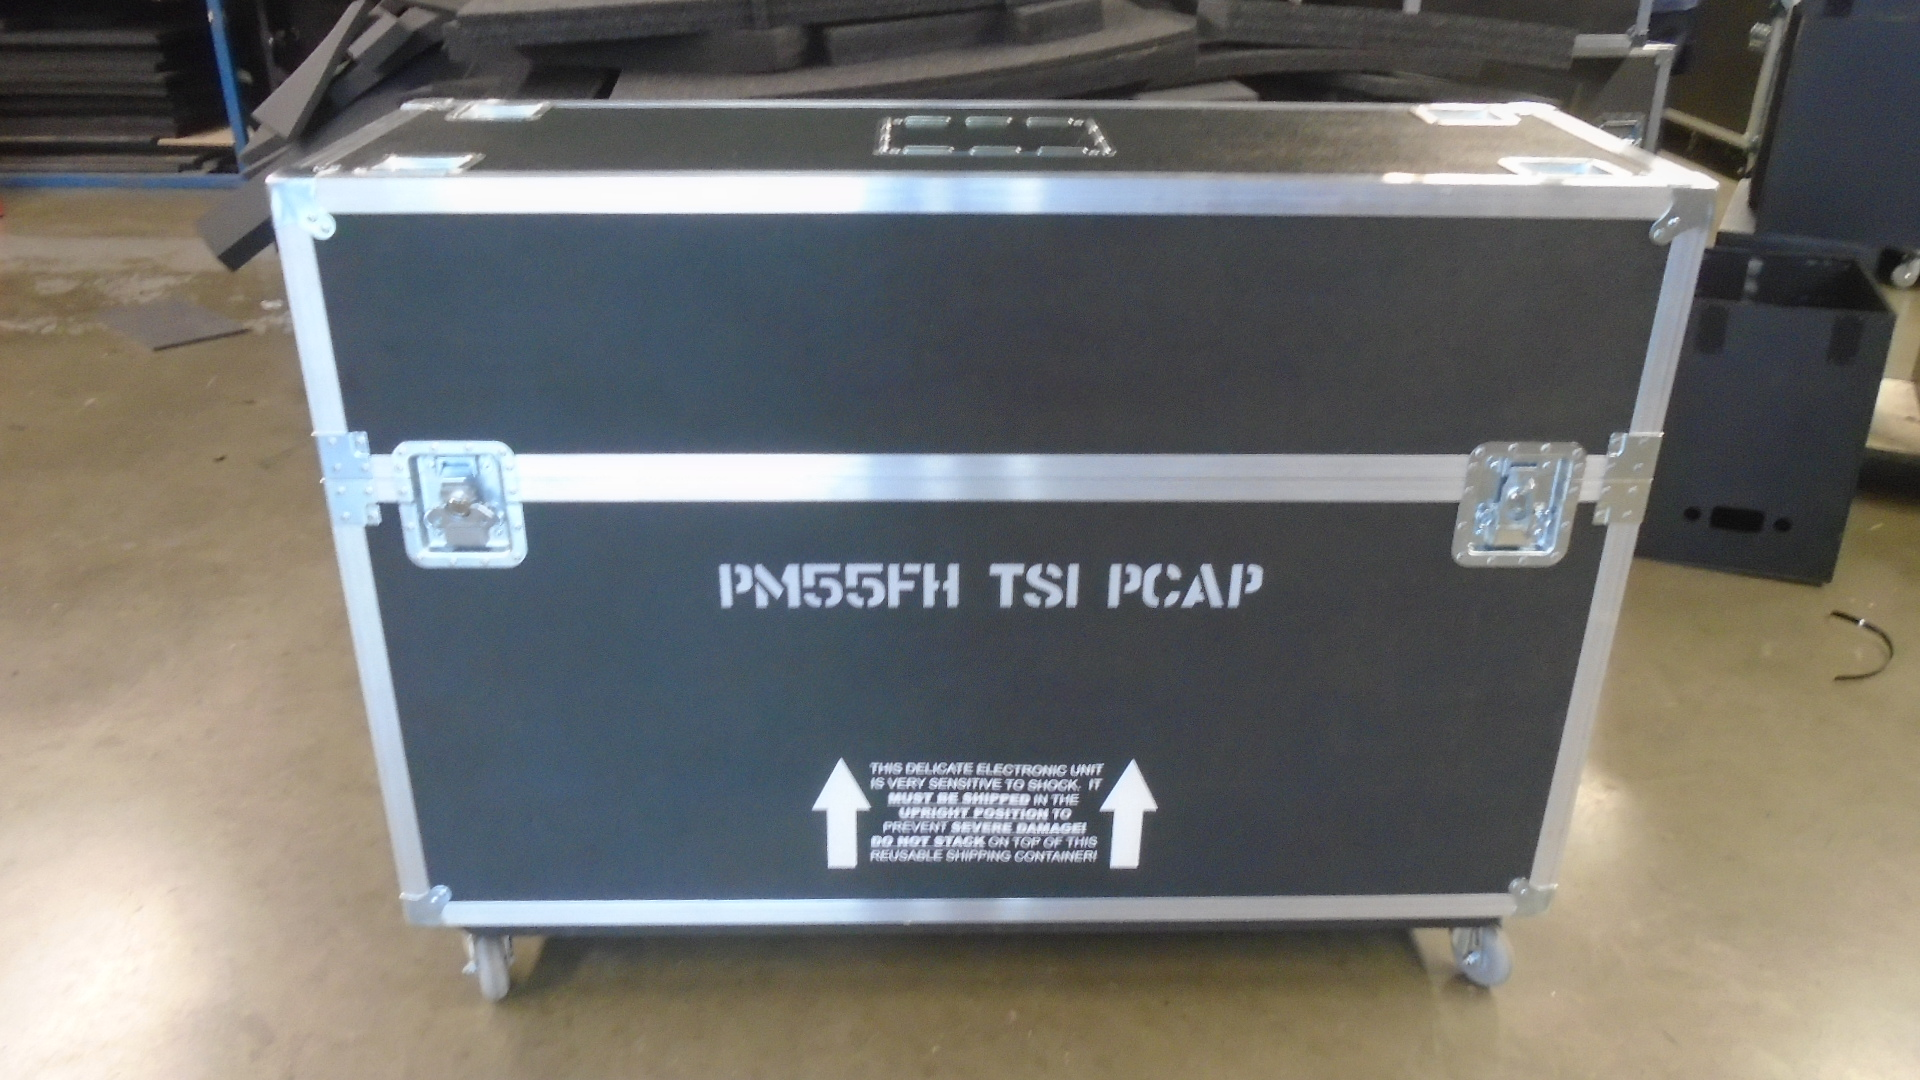 Print # 7802 - Custom Road Case for Samsung PM55FH PCAP Touch Screen Monitor Kit	 By Nelson Case Corp